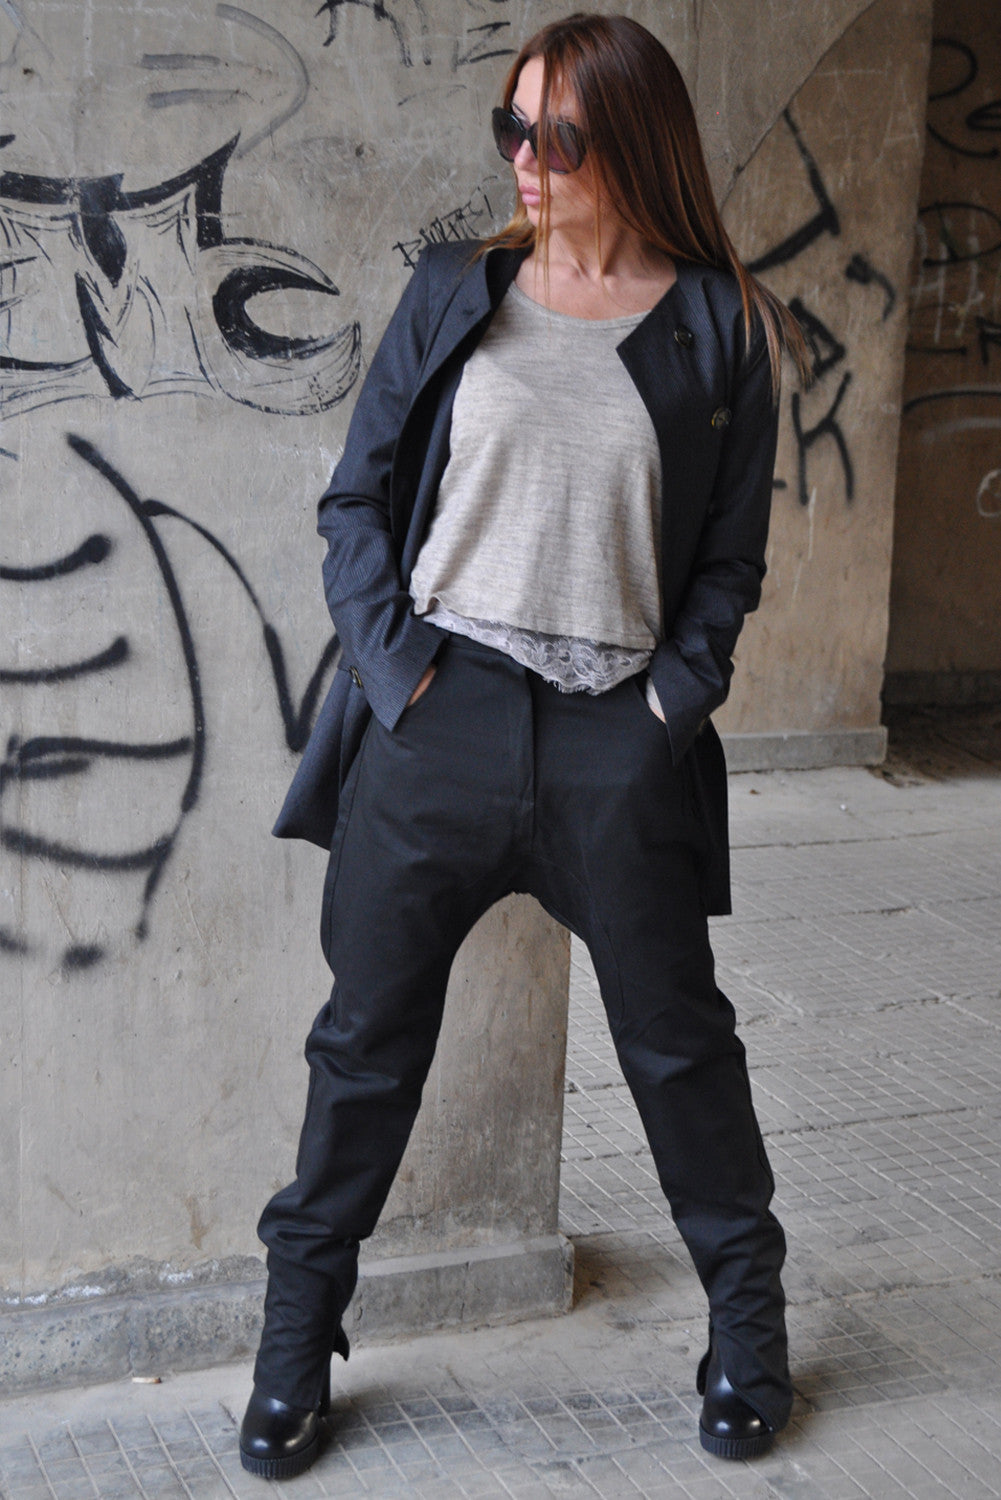 Black Drop Crotch Harem Pants, Black Pants, Trousers with Zippers and a Big Pocket